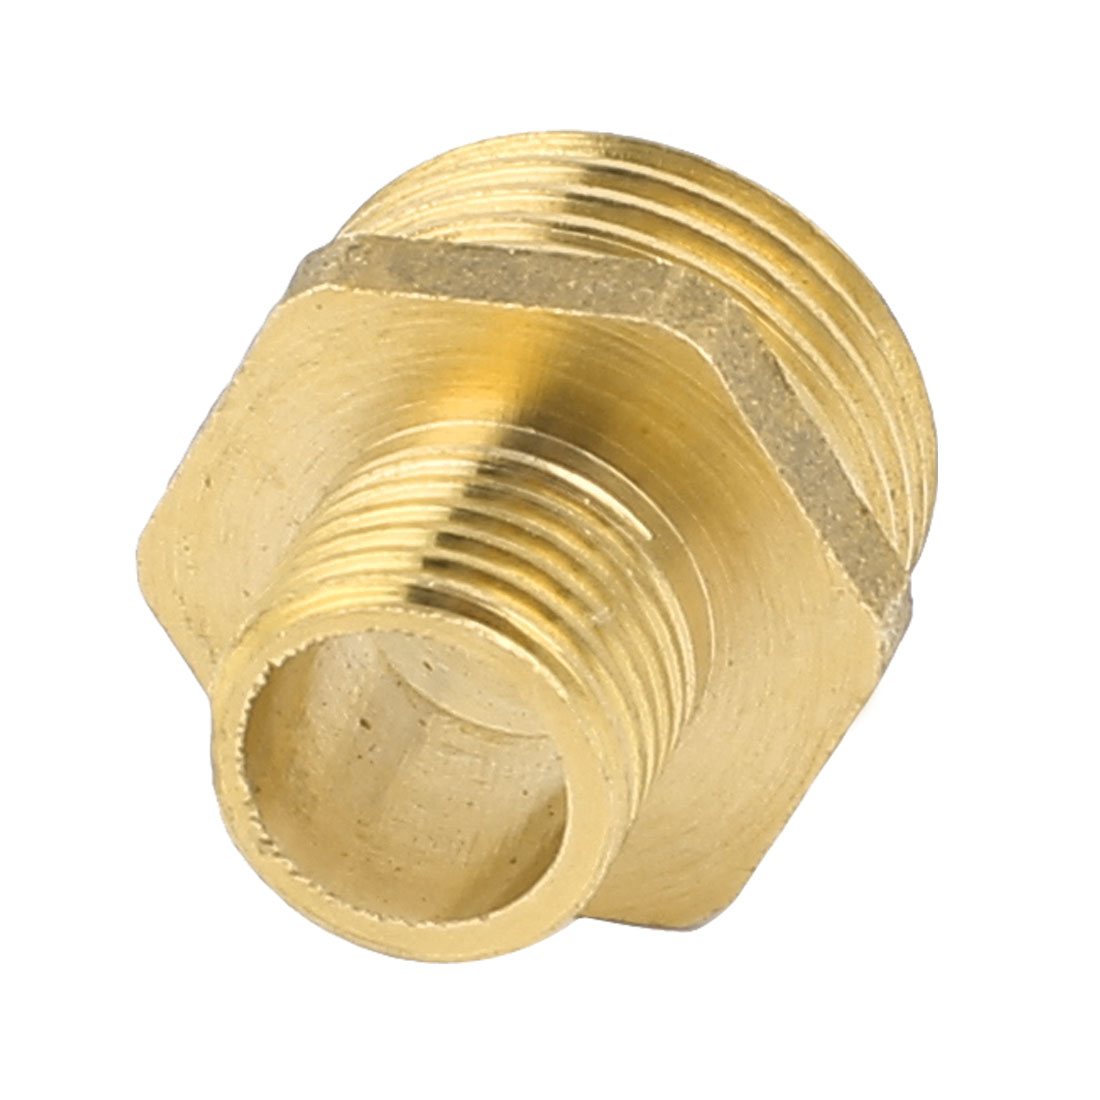 1/4BSP 1/2BSP Male Thread Dimeter Brass Hex Adapter Reducer Bushing